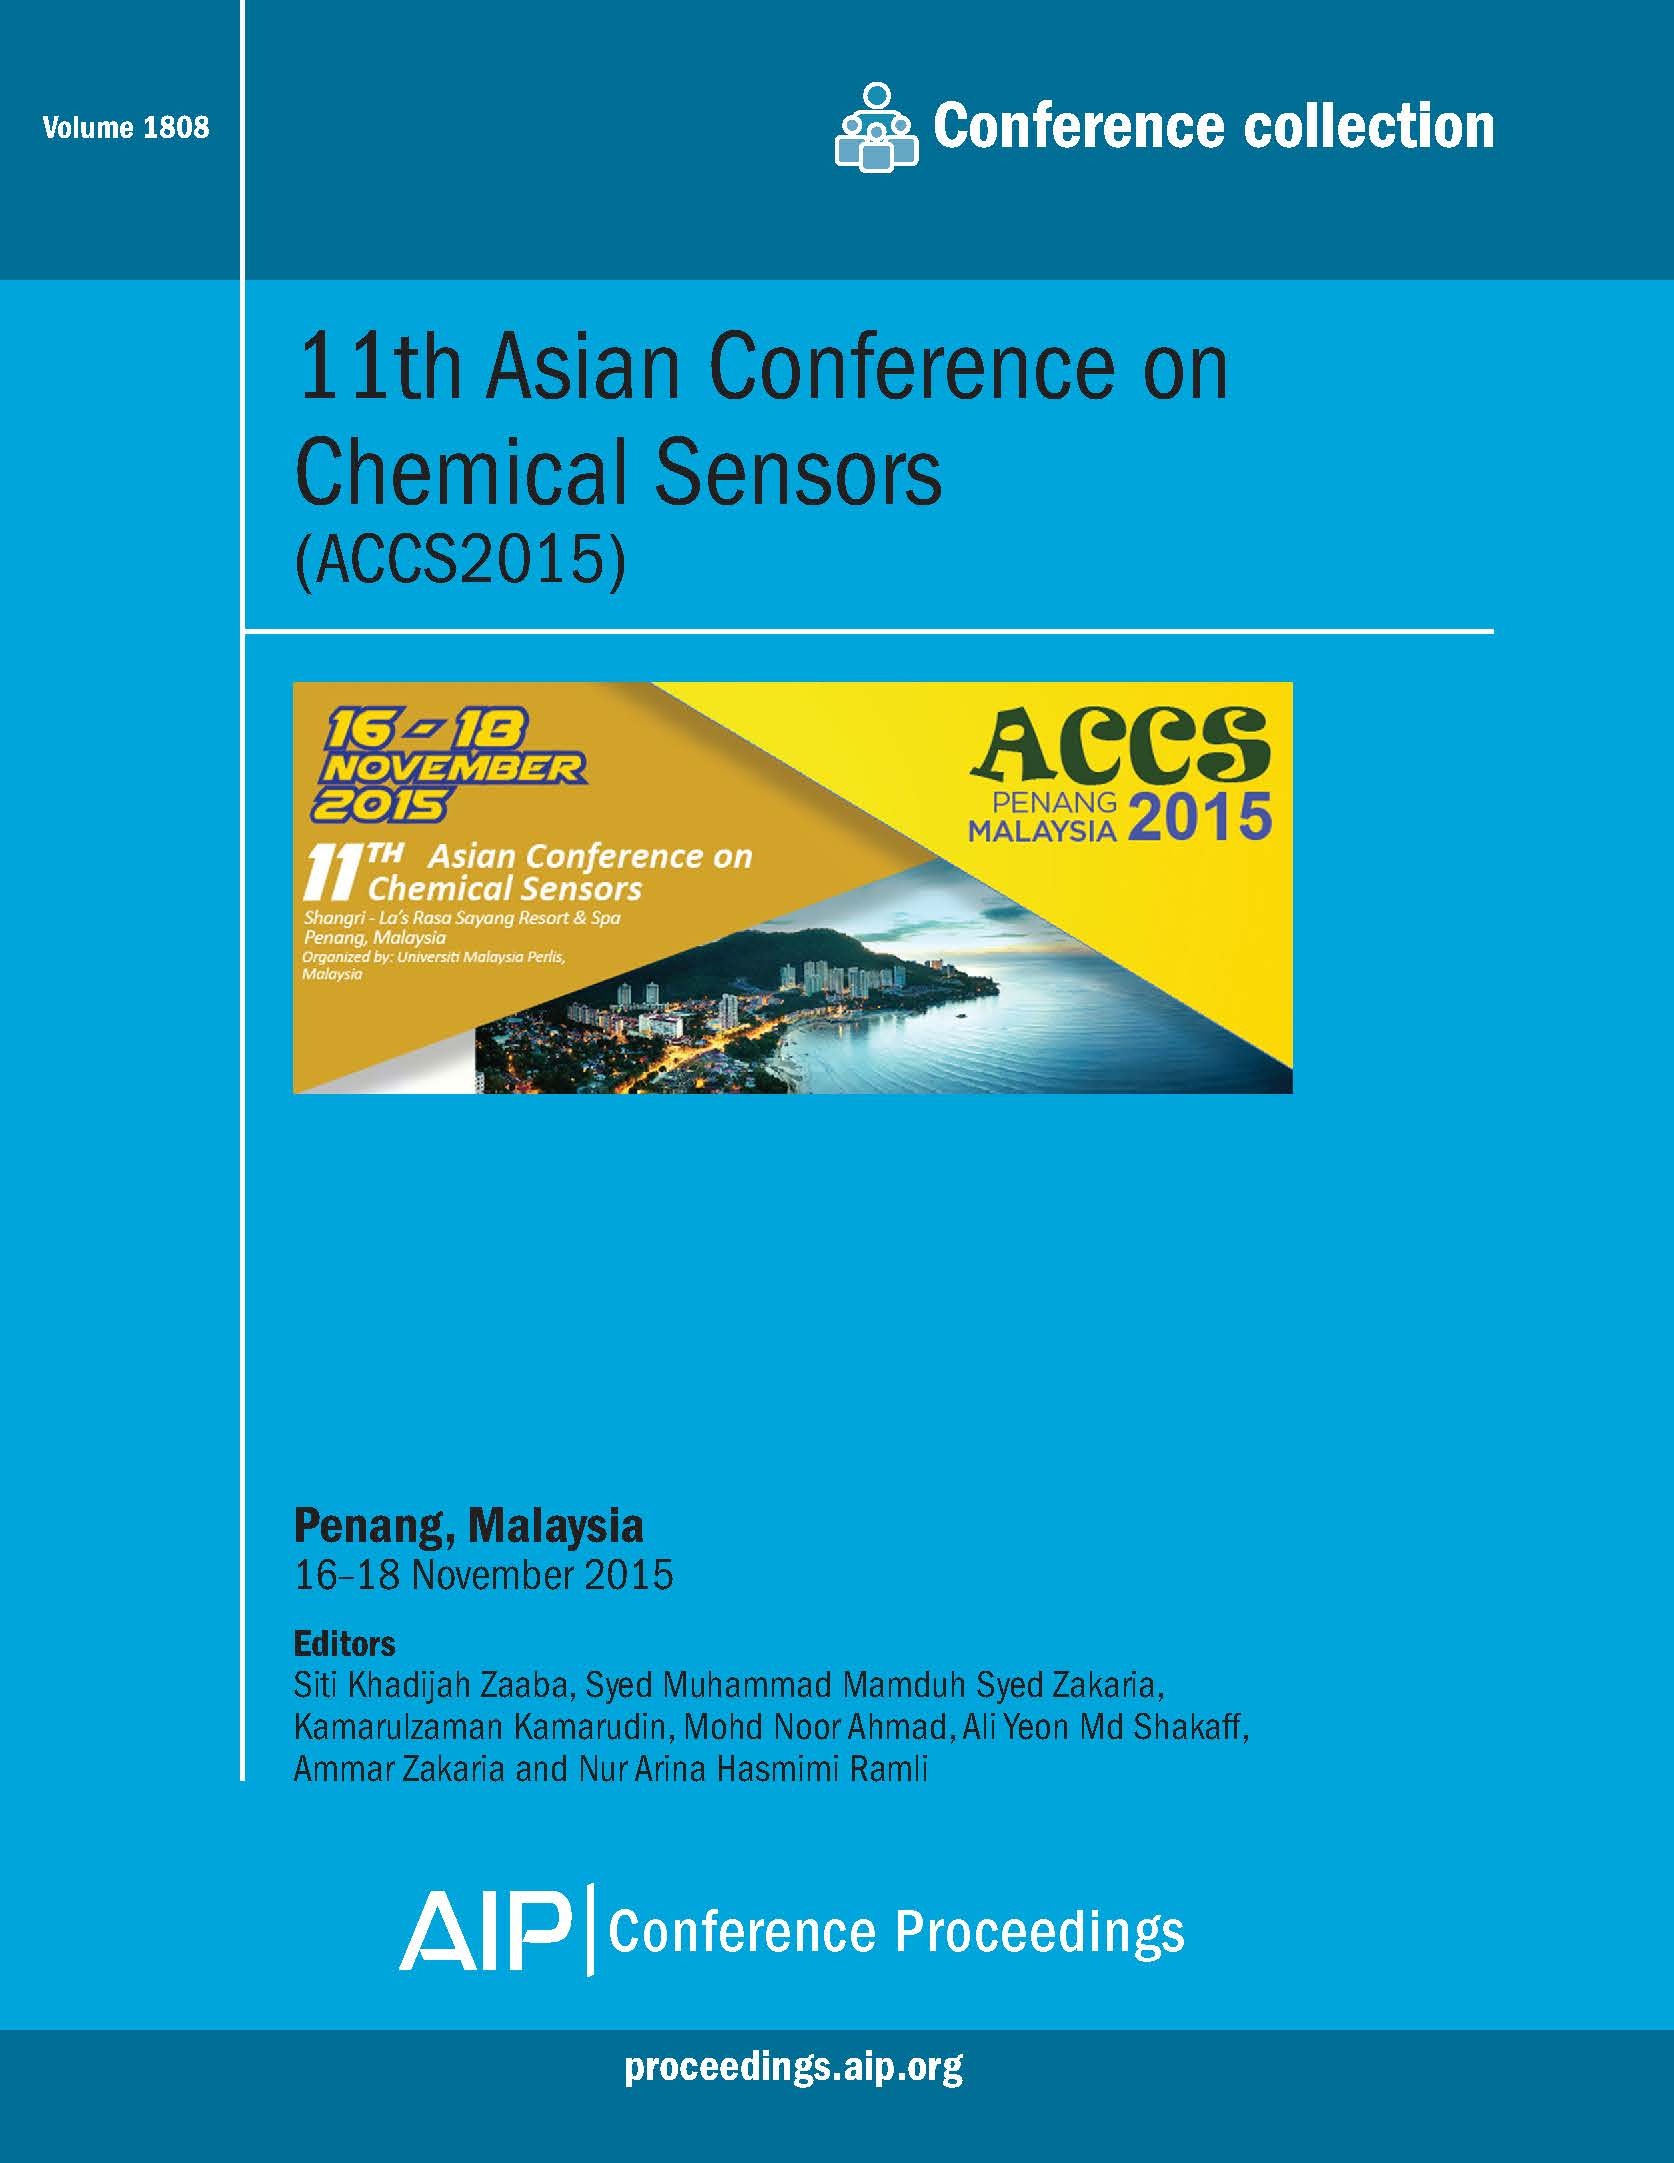 Volume 1808: 11th Asian Conference on Chemical Sensors | AIP